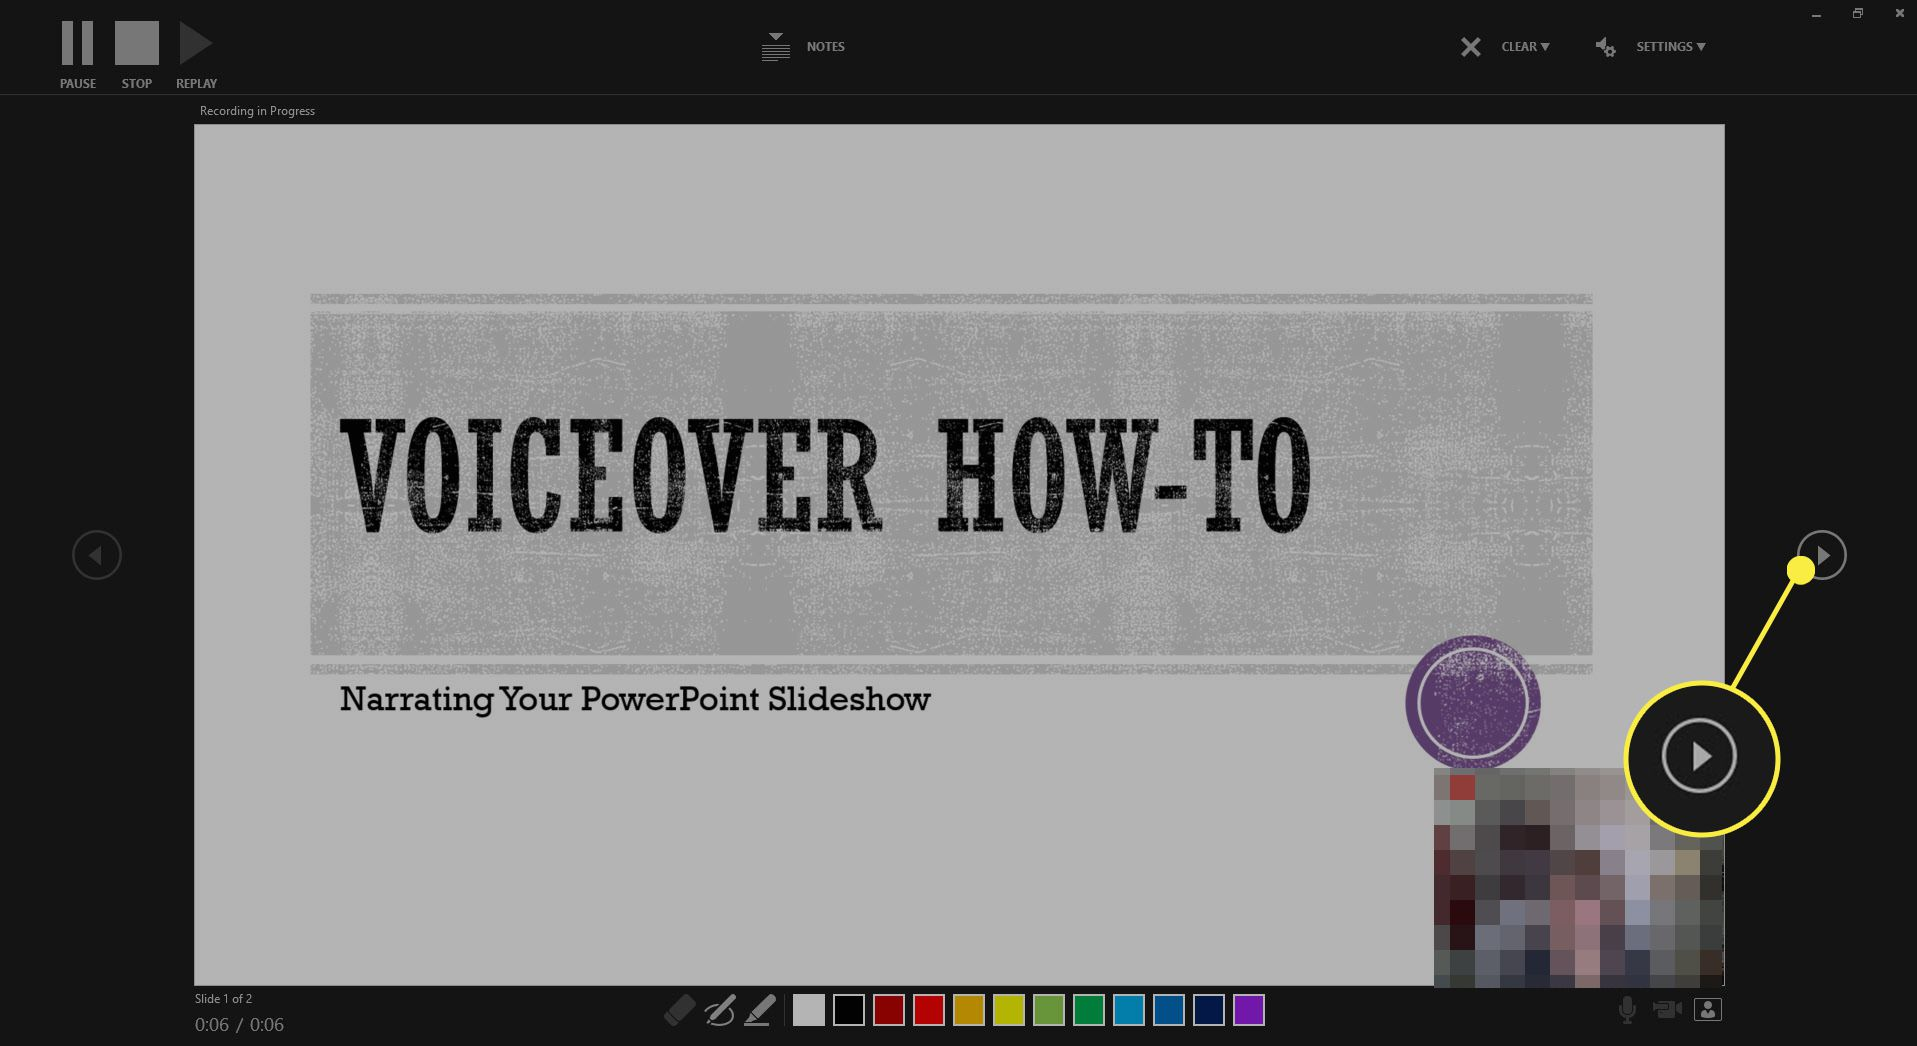 Screenshot showing how to advance a slide while recording a slideshow in PowerPoint.